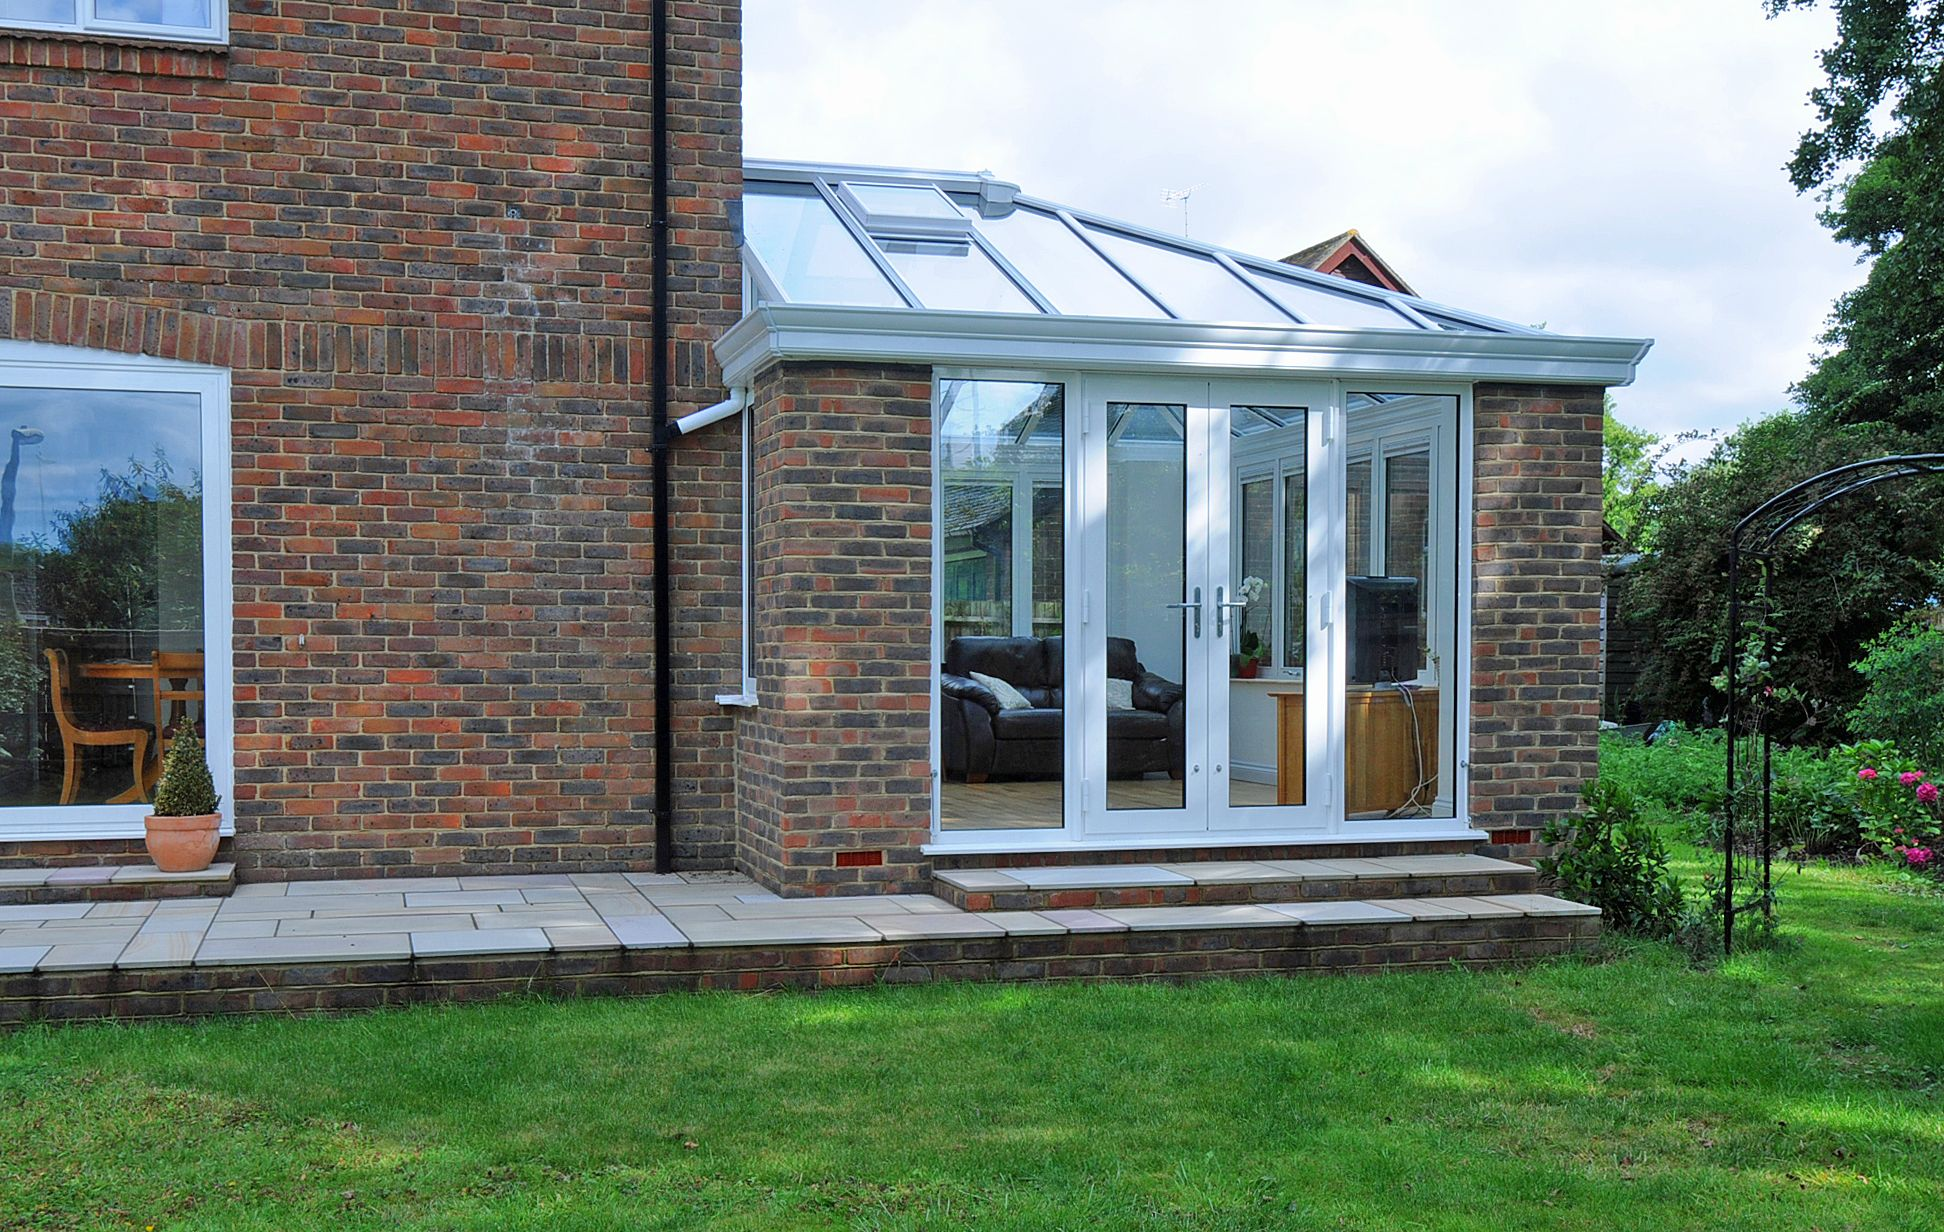 White aluminium garden room with French doors leading out